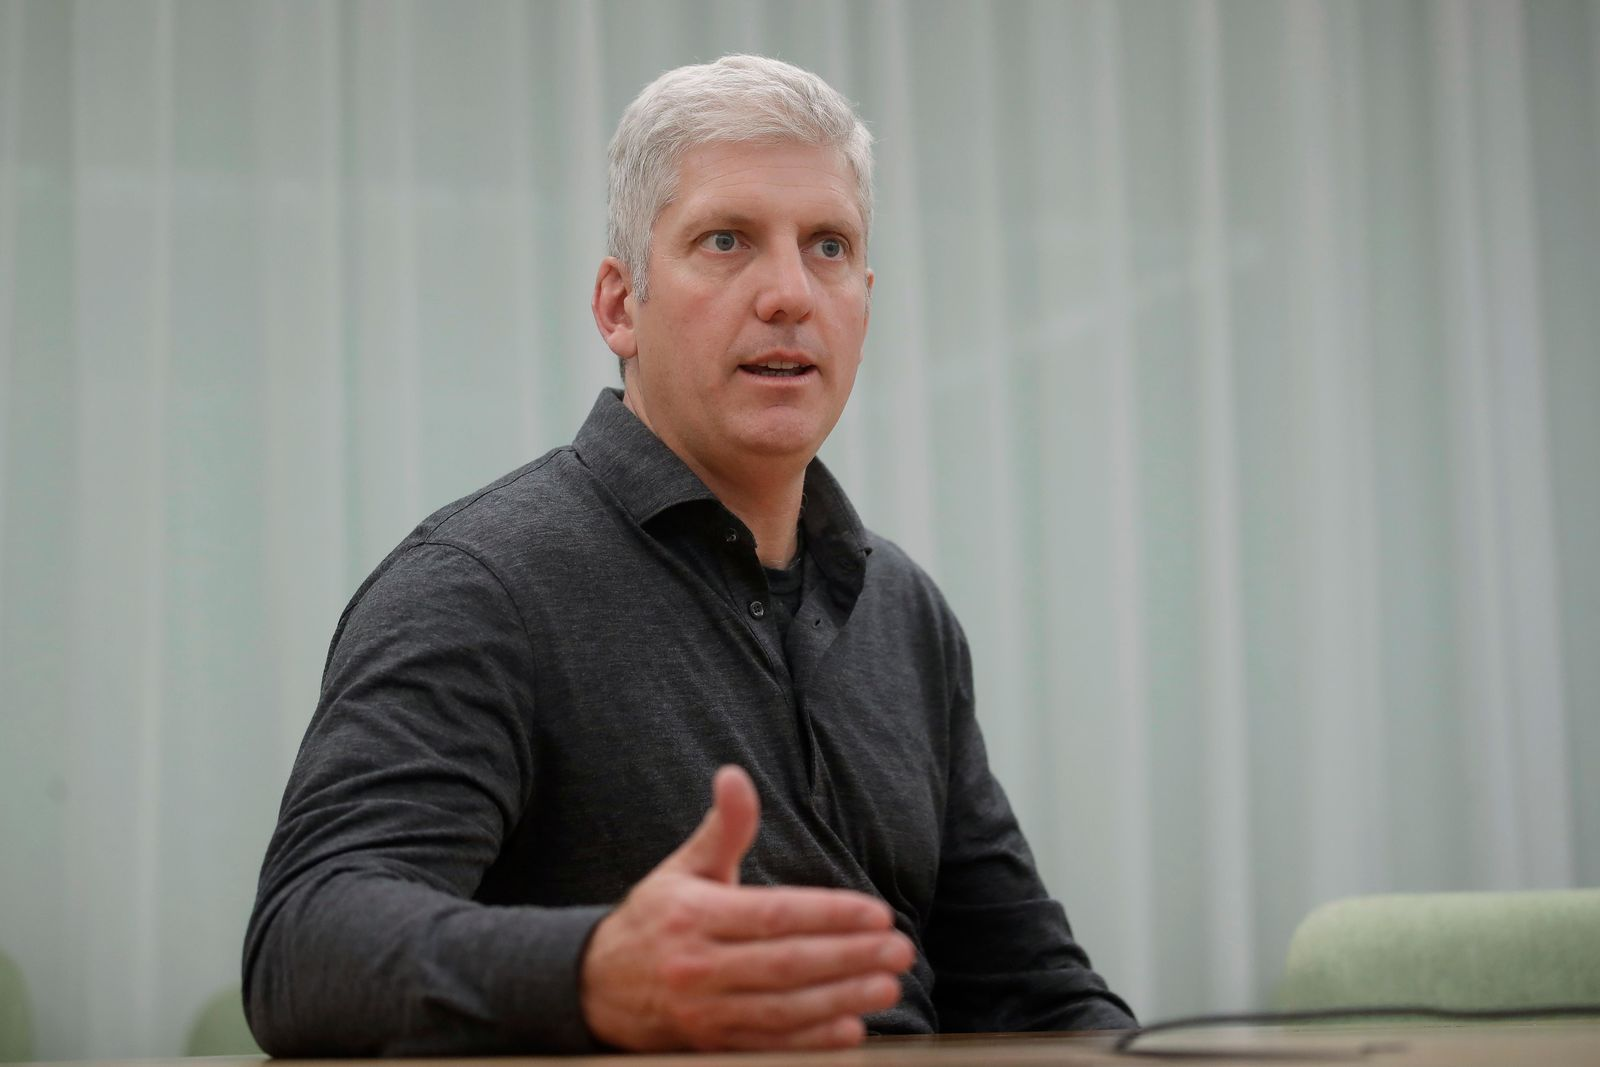 In this Tuesday, Sept. 24, 2019, photo Rick Osterloh, SVP of Google Hardware gestures while interviewed in Mountain View, Calif. (AP Photo/Jeff Chiu)